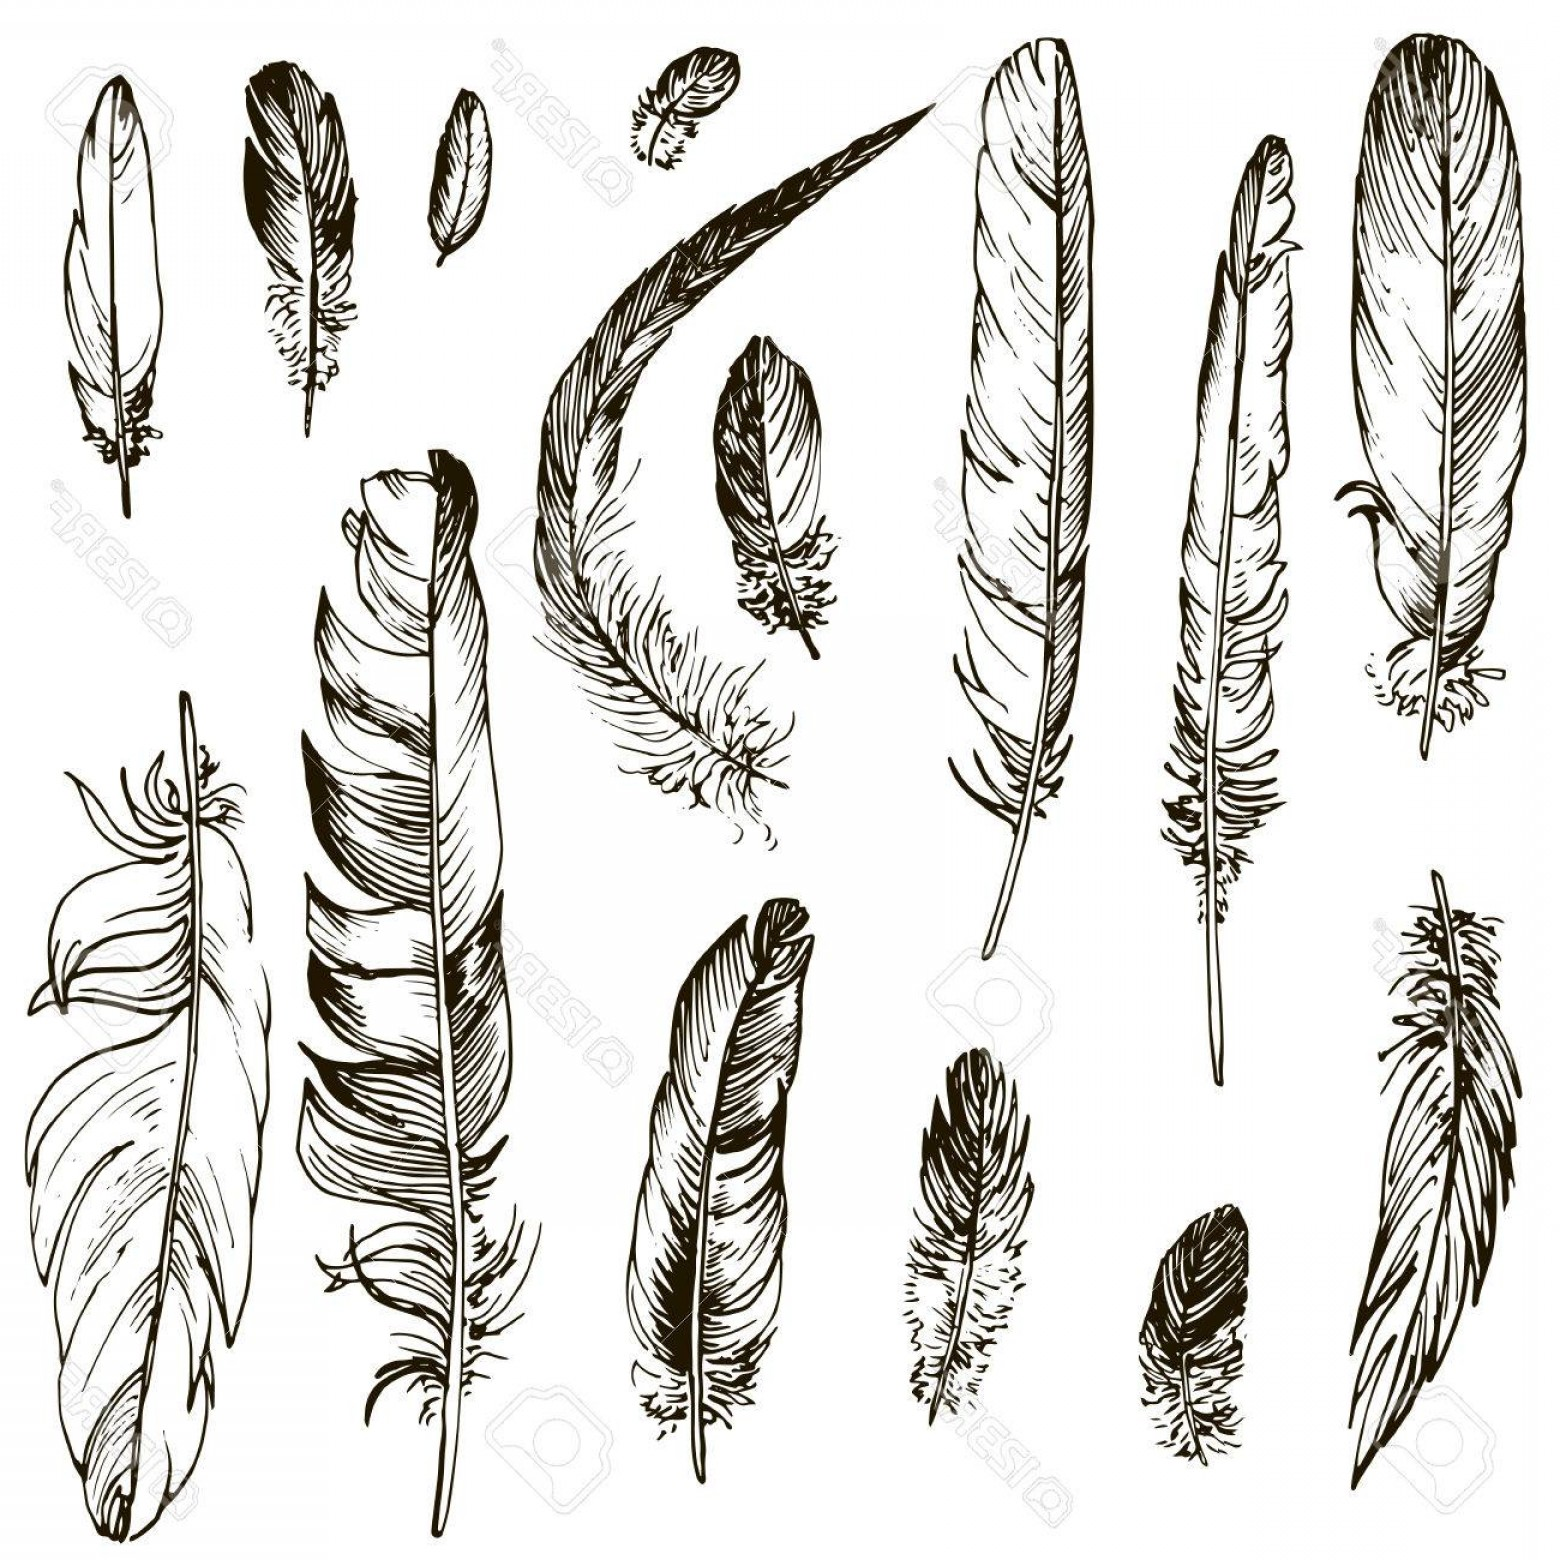 Vector Drawing Feathers: Photostock Vector Vector Set Of Ink Drawing Feathers Hand Drawn Vector Elements